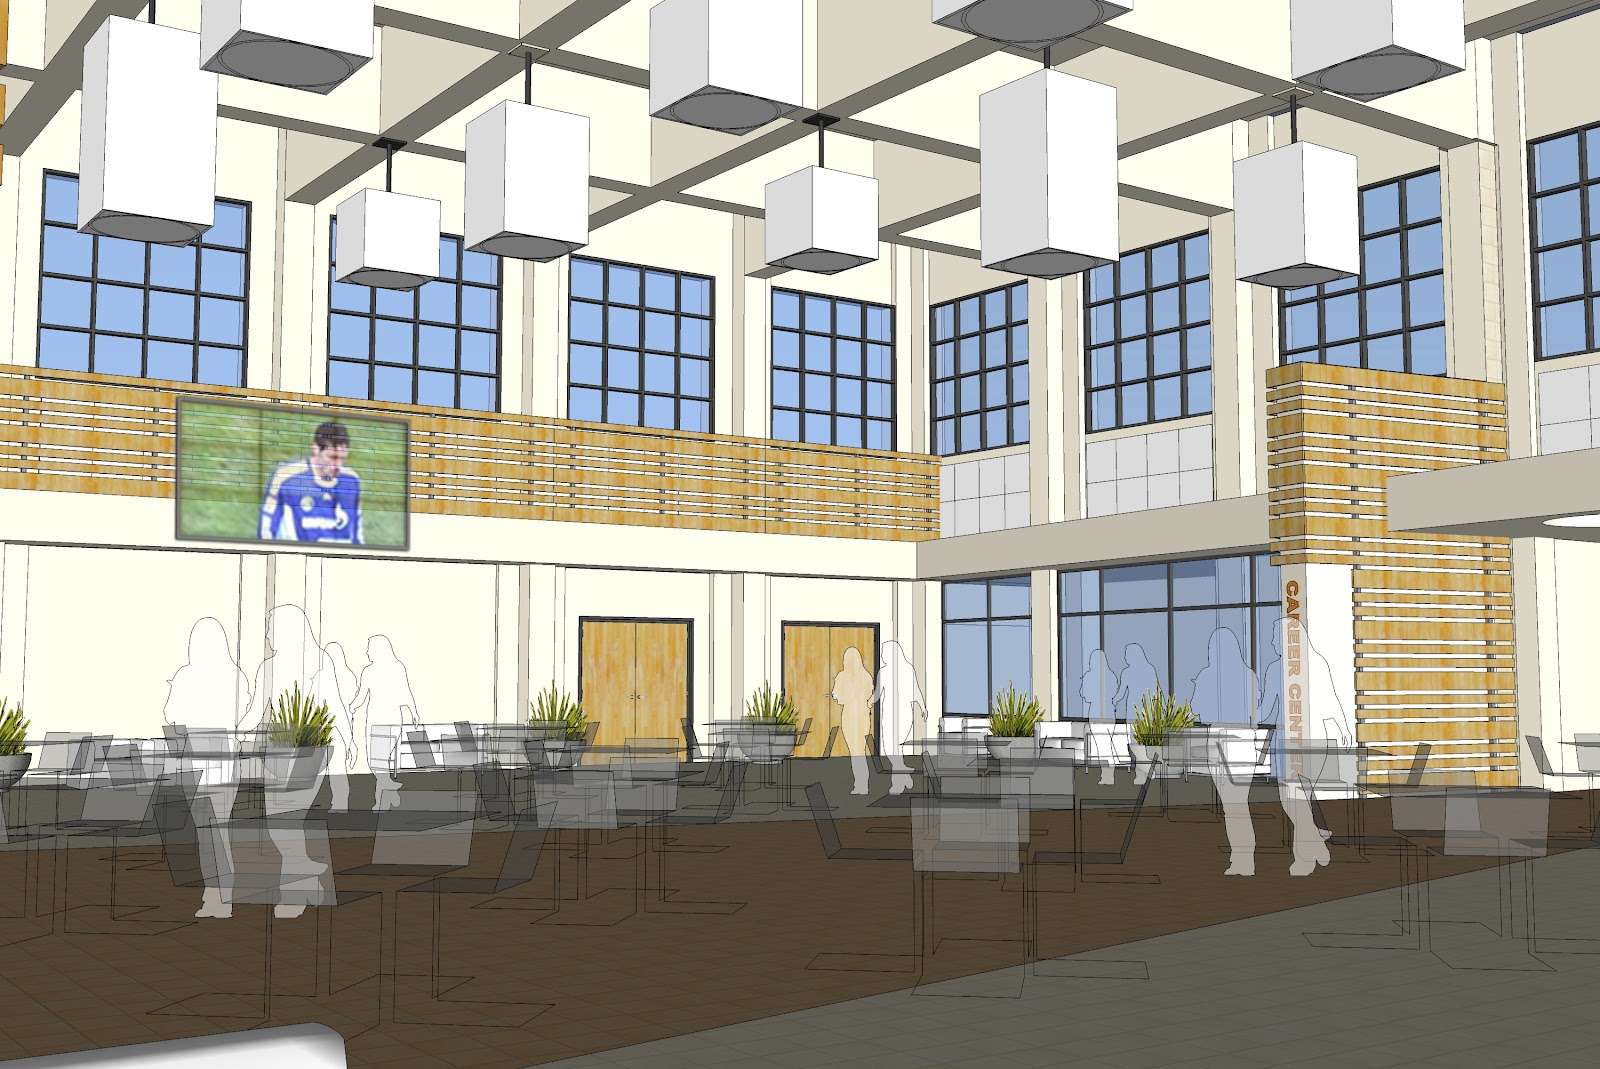 Cañada Students Will Have A New Place To Study Eat And Socialize On Campus With The Opening Of Grove In August